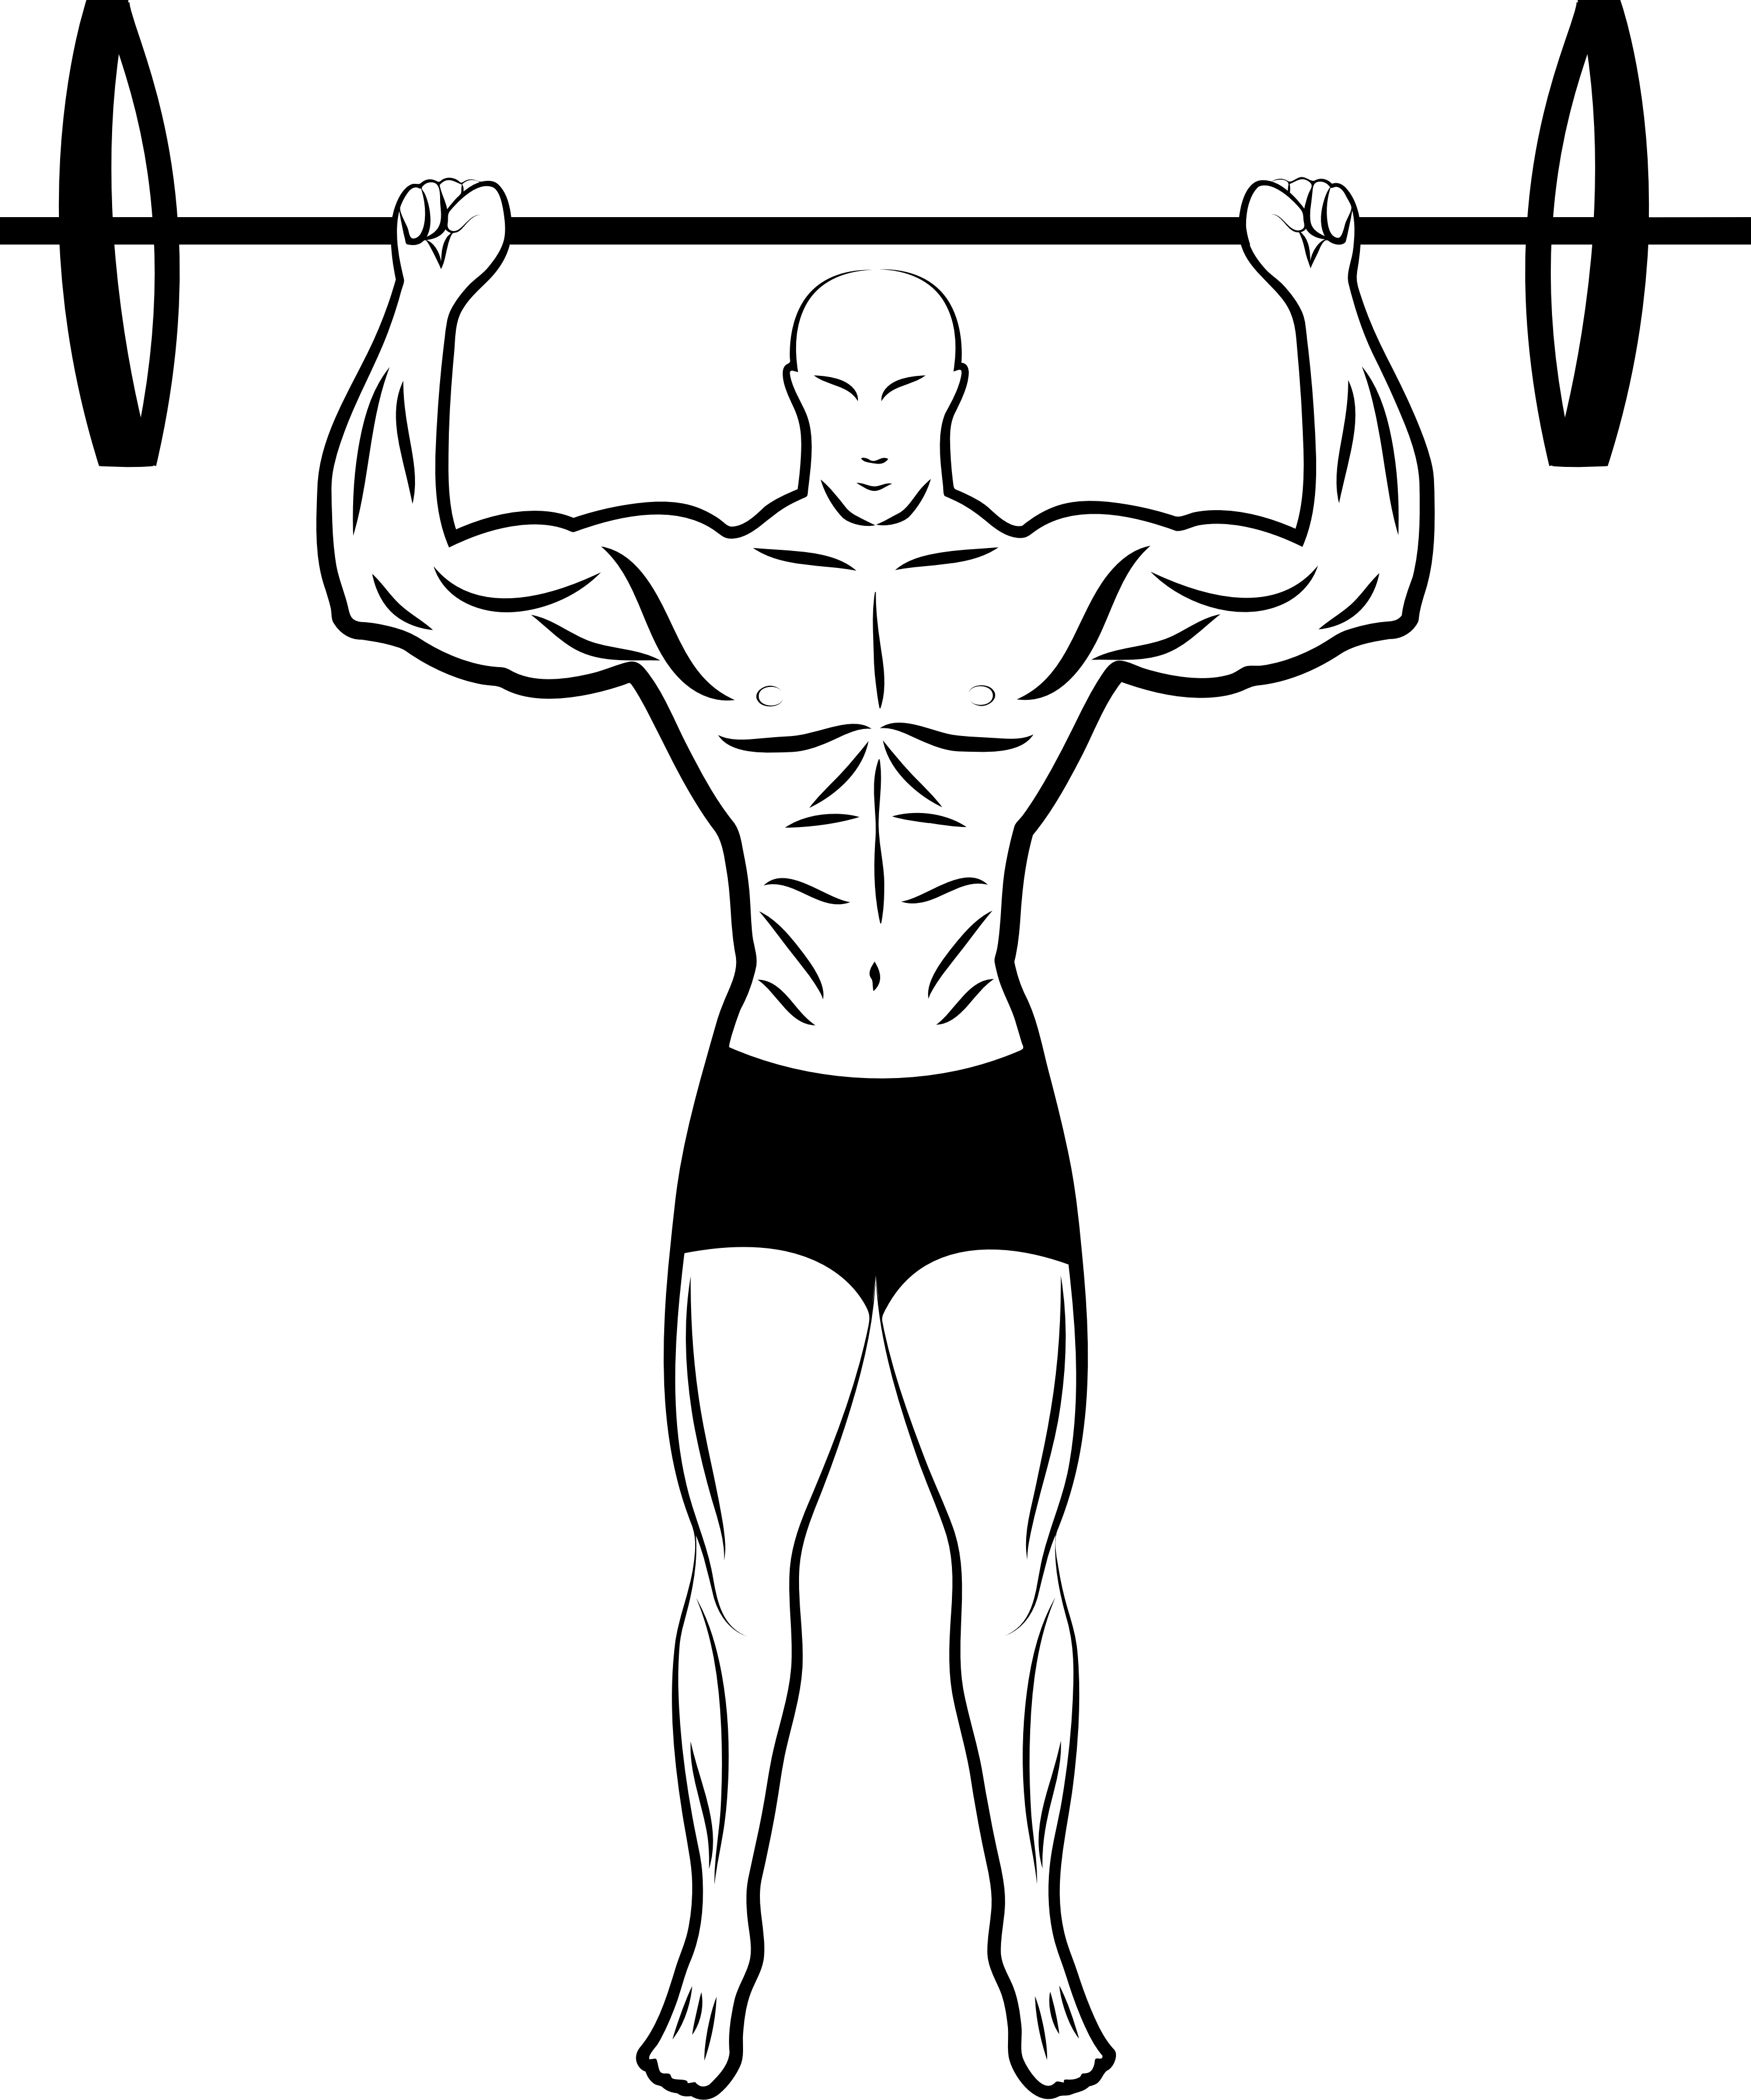 Arms clipart fitness. Physical drawing at getdrawings